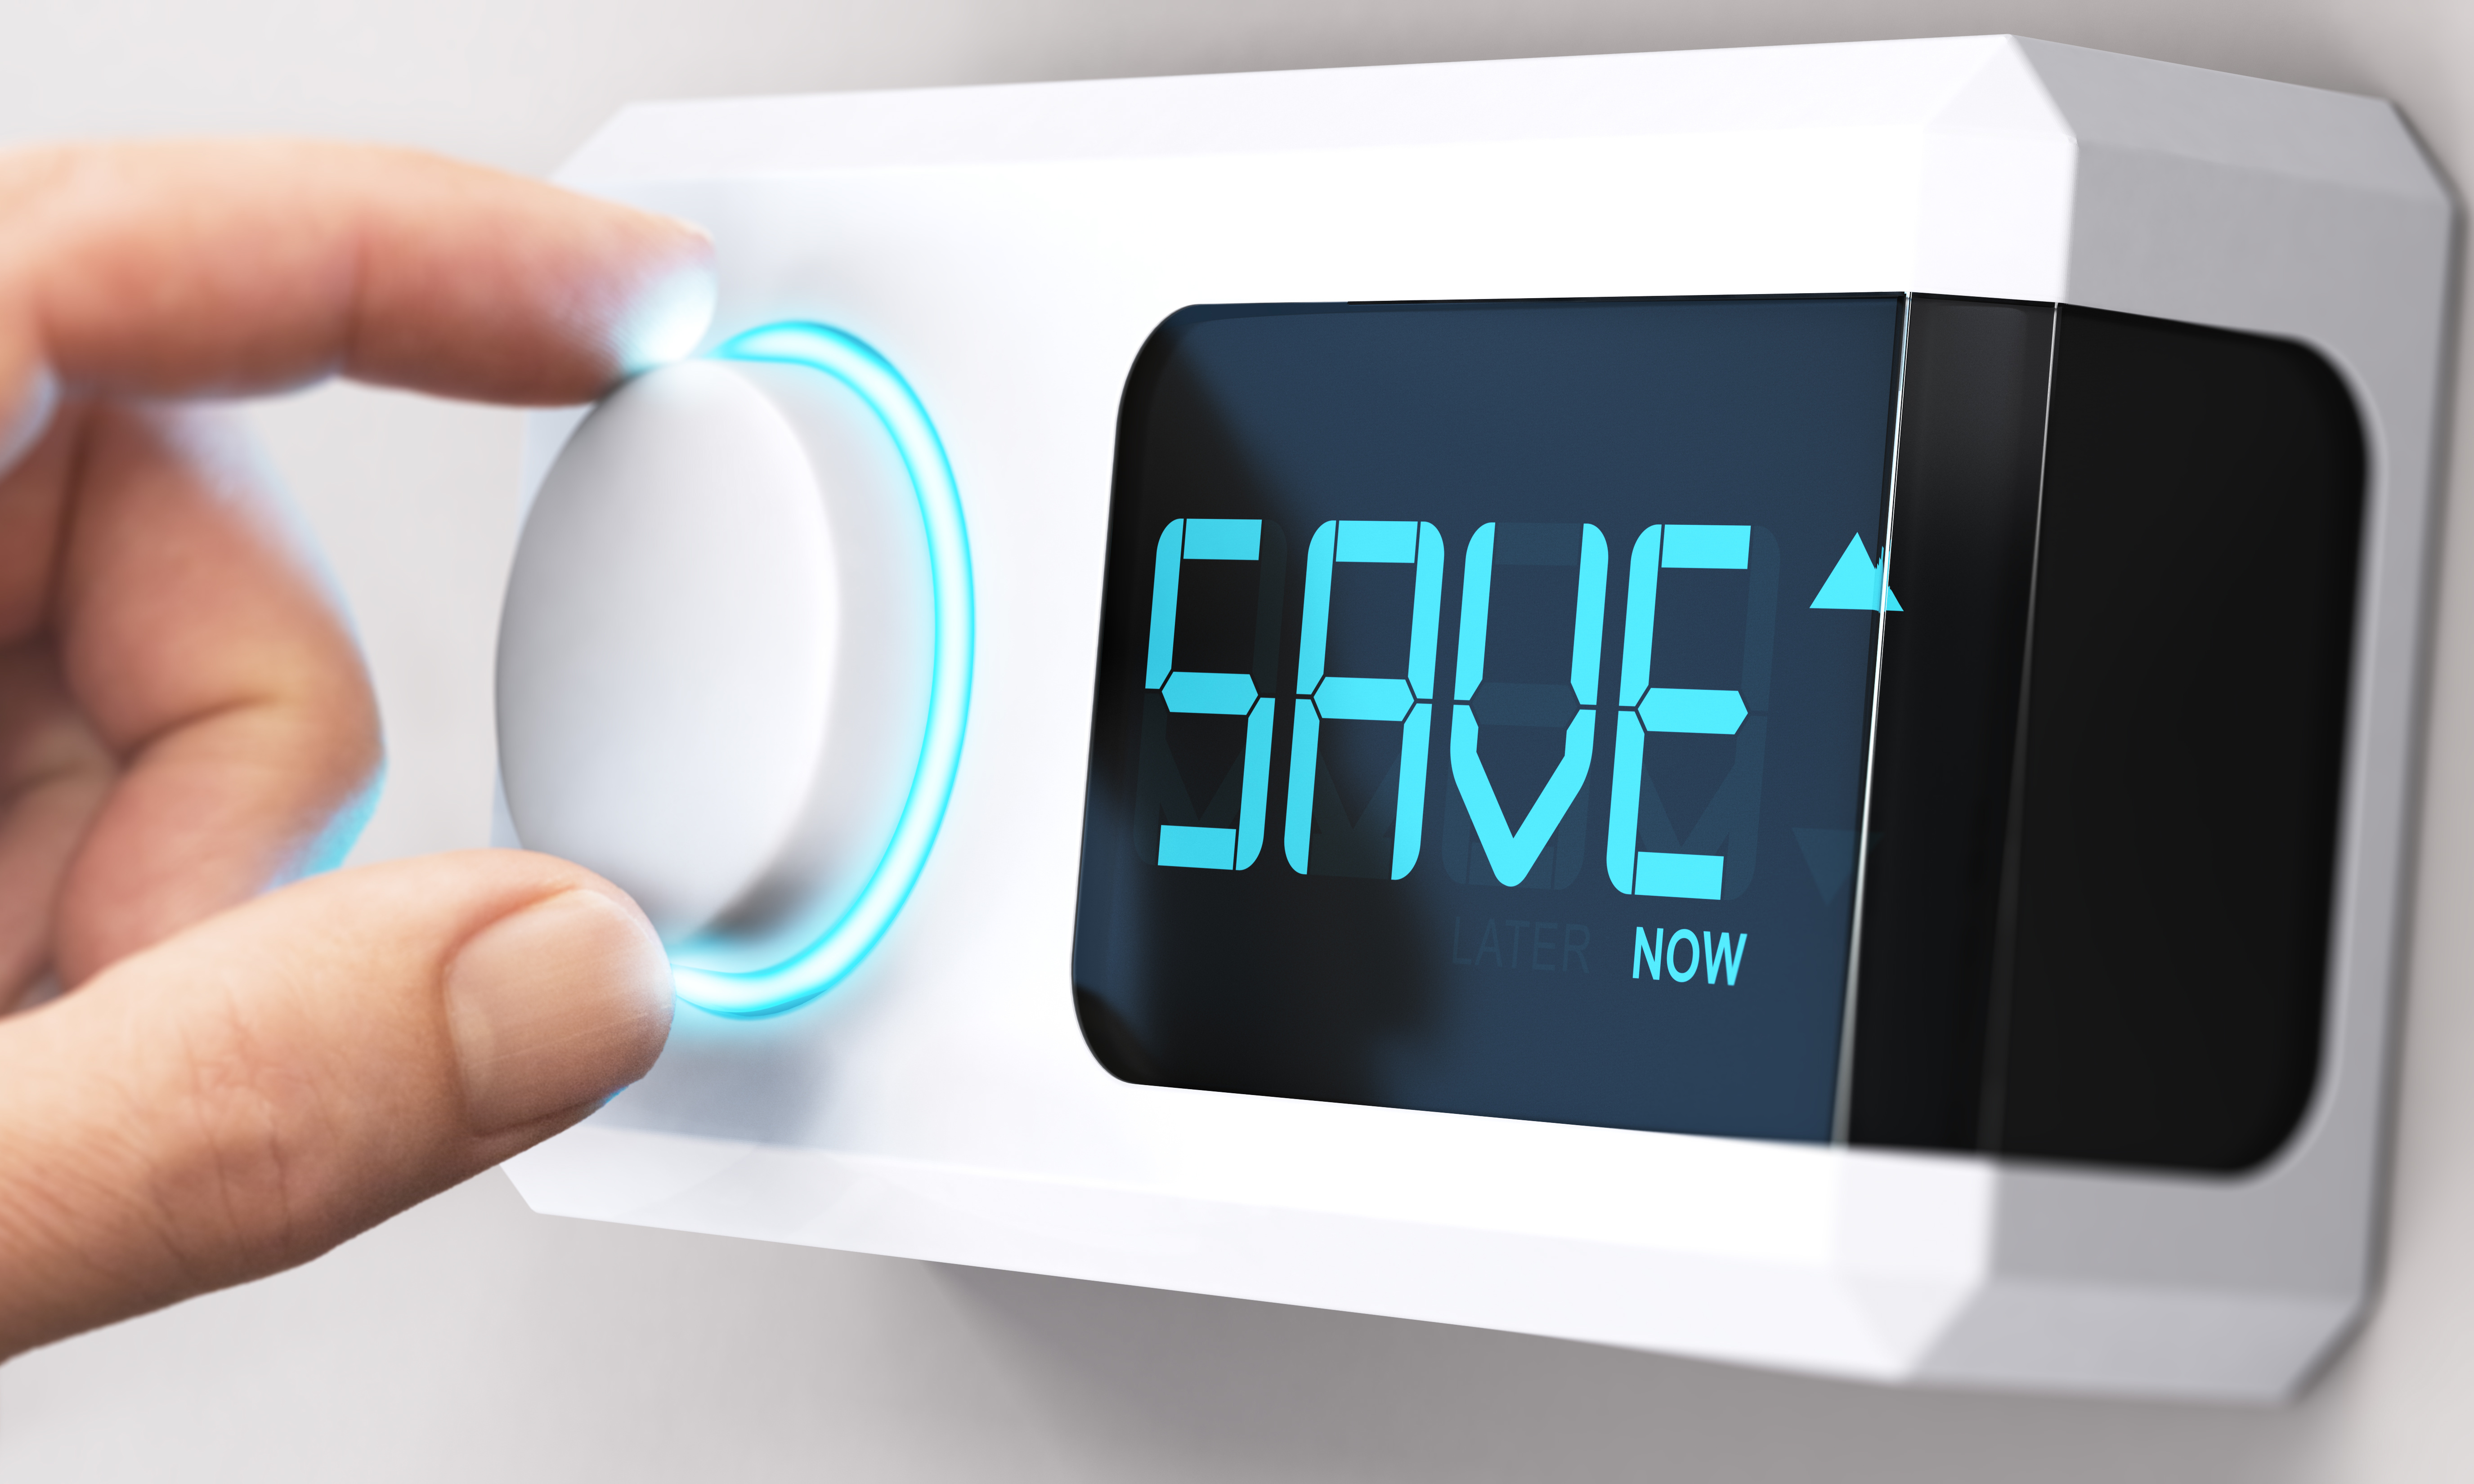 Top Tips For Saving Energy This Winter